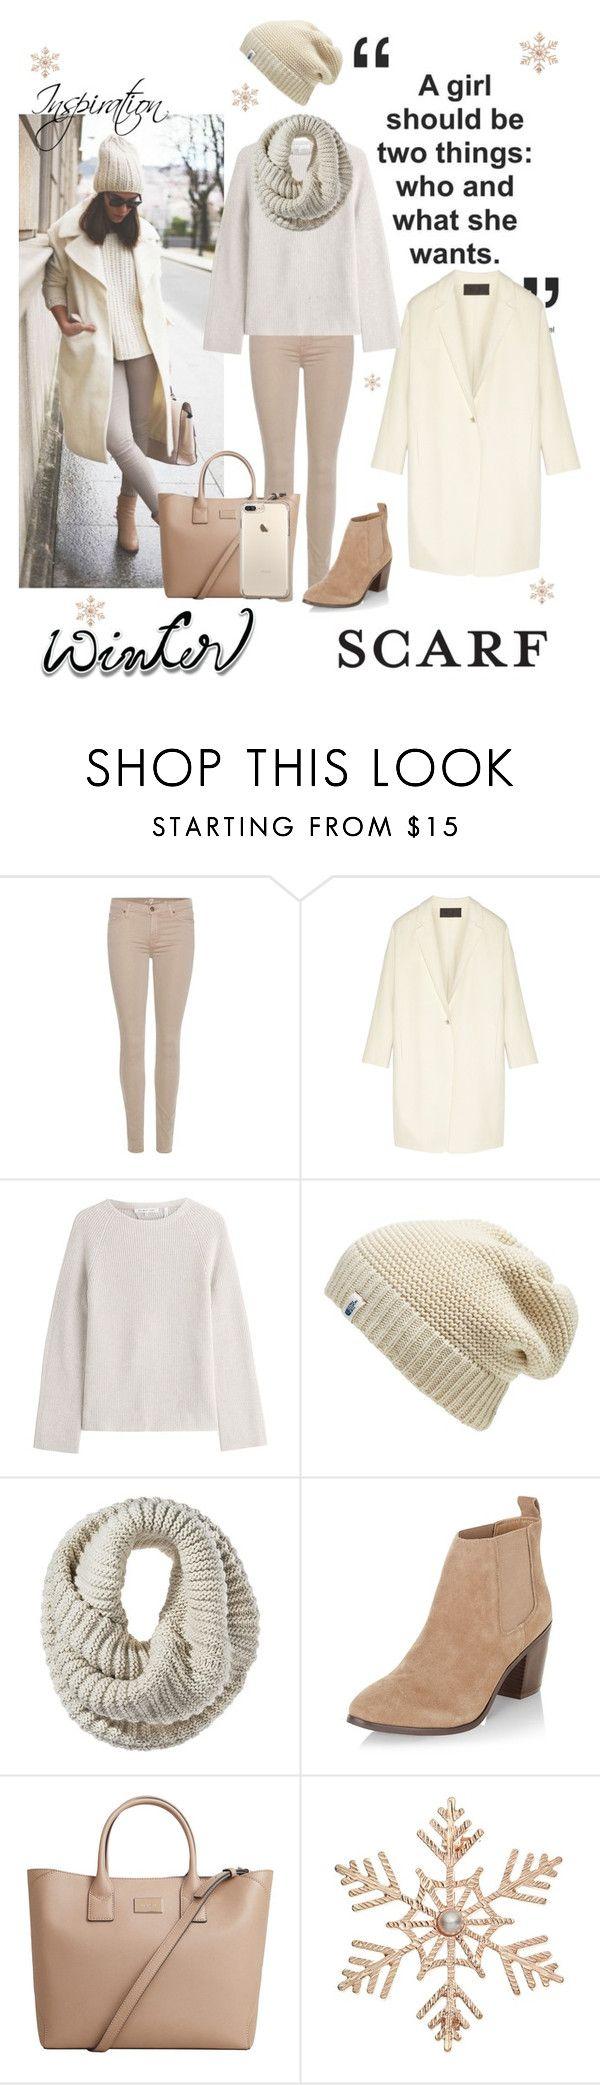 """Rock That Winter Scarf"" by mya-zari ❤ liked on Polyvore featuring ASAP, 7 For All Mankind, Donna Karan, Helmut Lang, The North Face, Mossimo, New Look, MANGO and John Lewis"